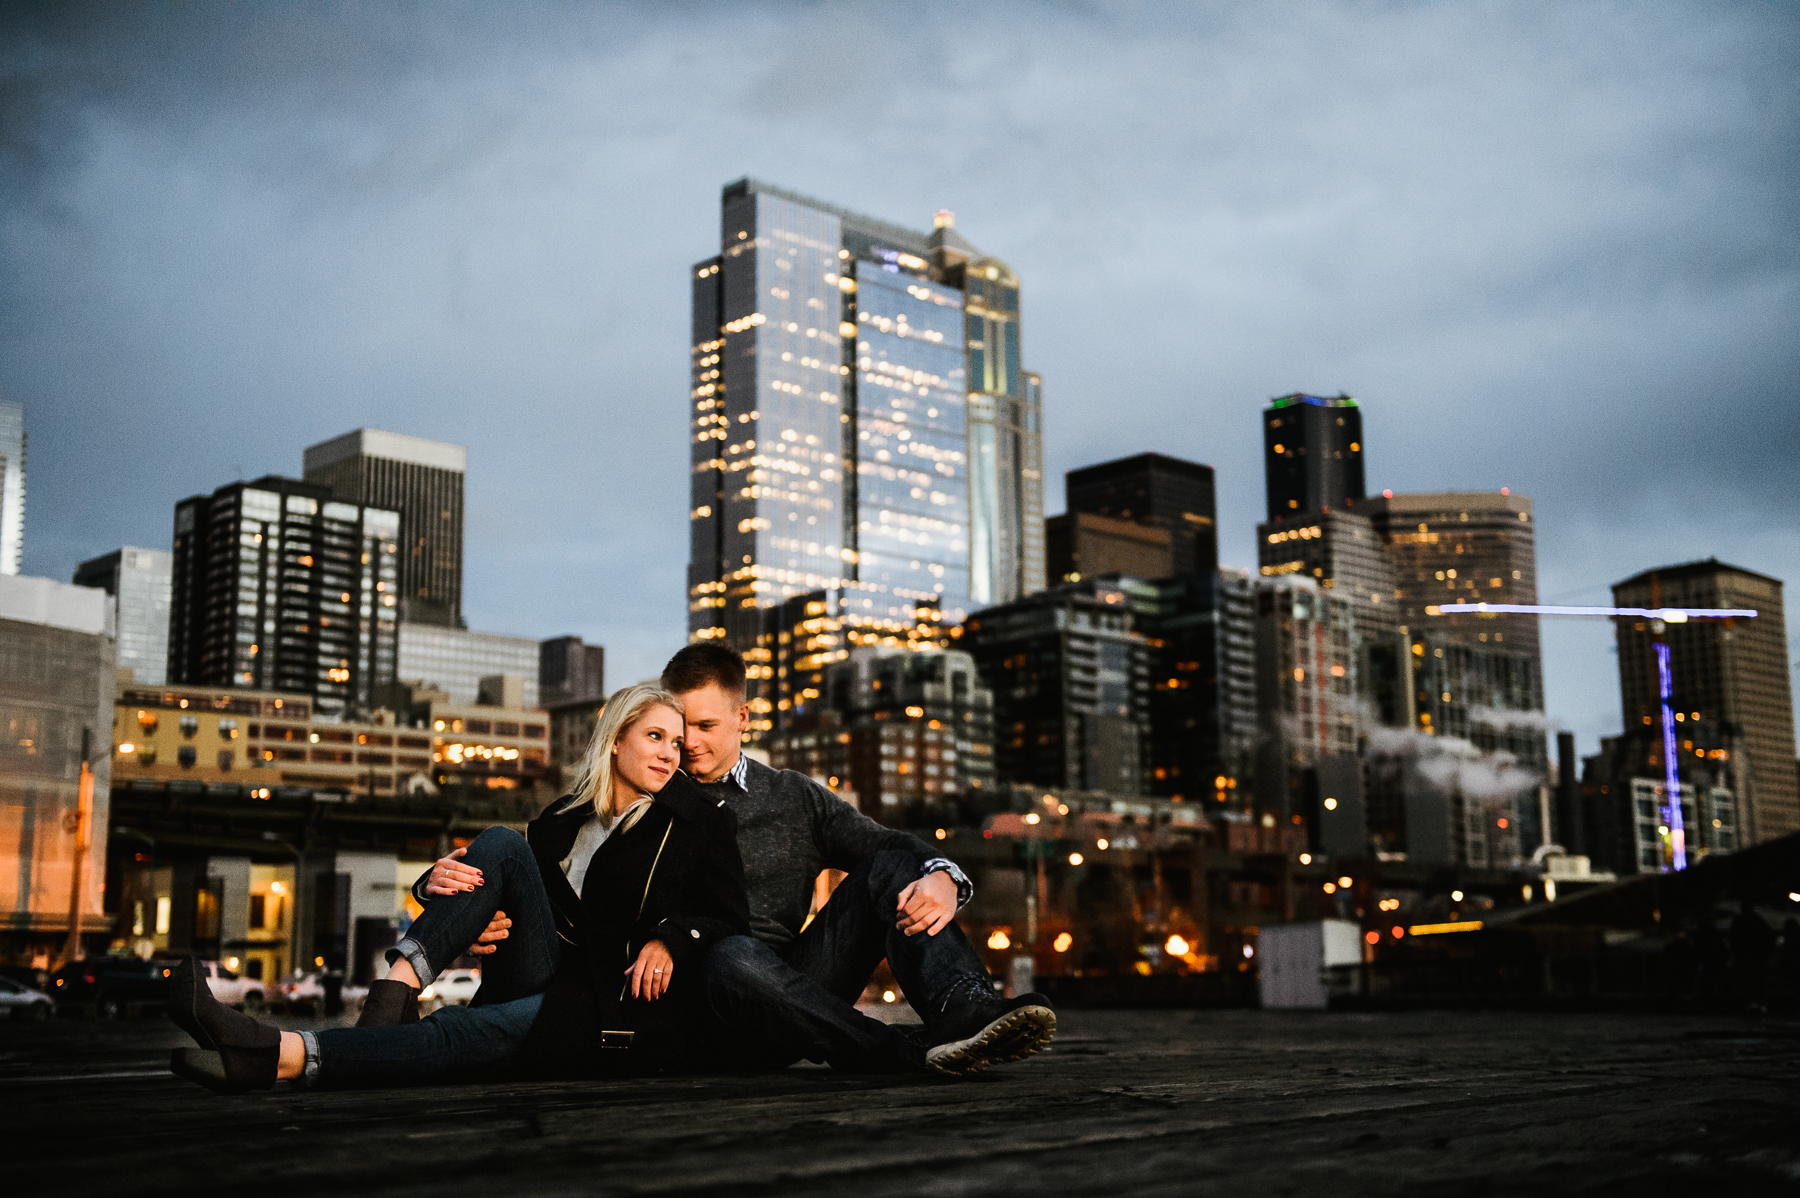 seattle-wedding-photographer-engagement-sessions-best-5